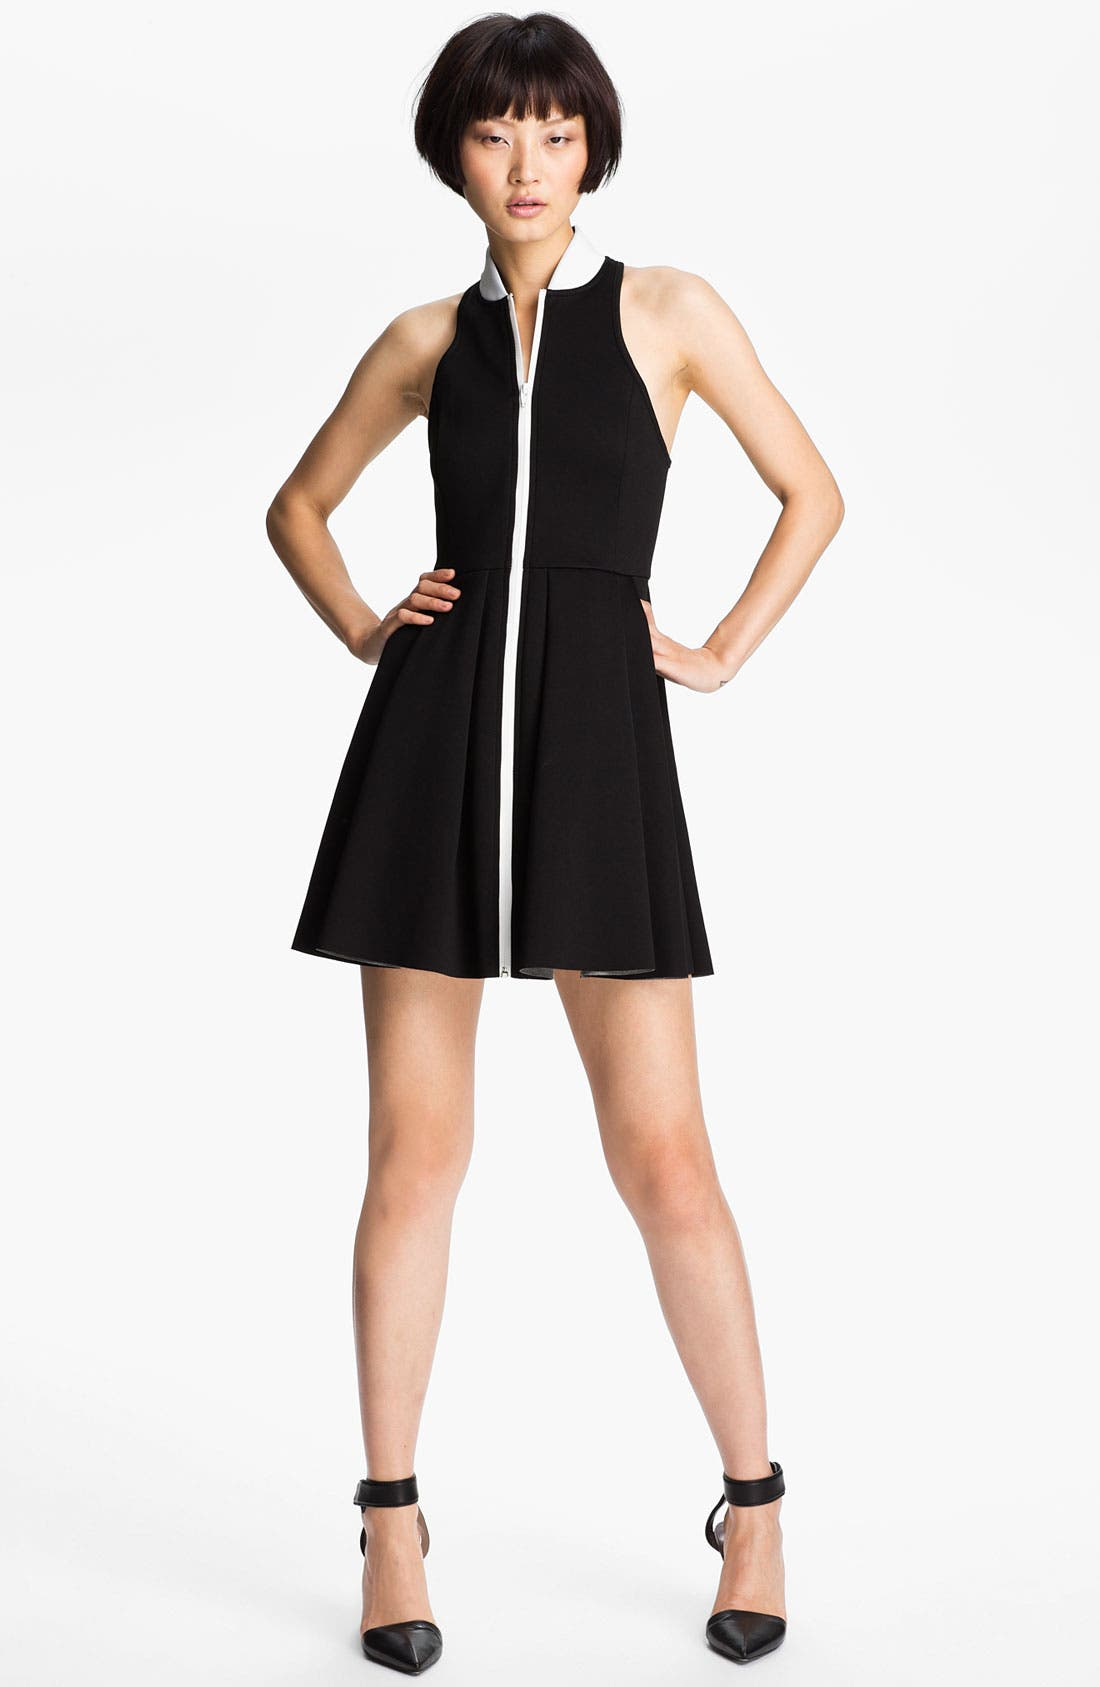 Alternate Image 1 Selected - T by Alexander Wang Neoprene Dress